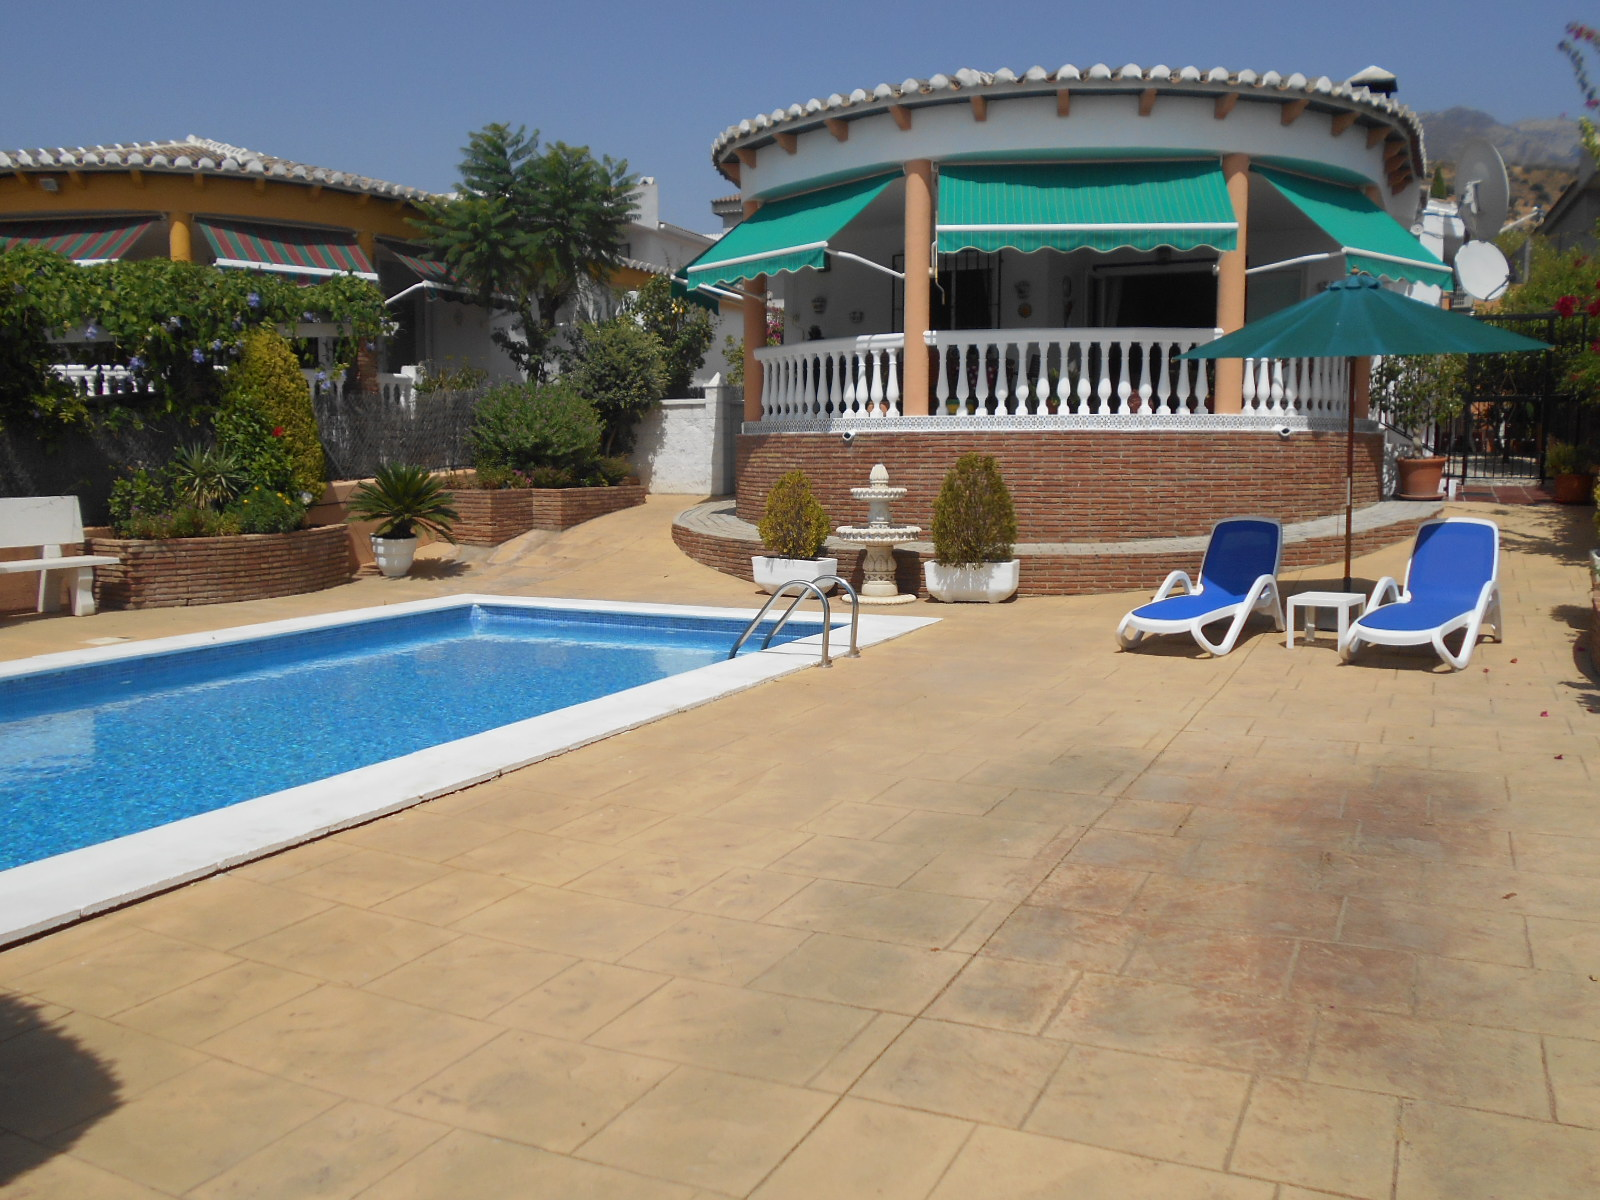 2 BEDROOM VILLA CLOSE TO EL PRADO